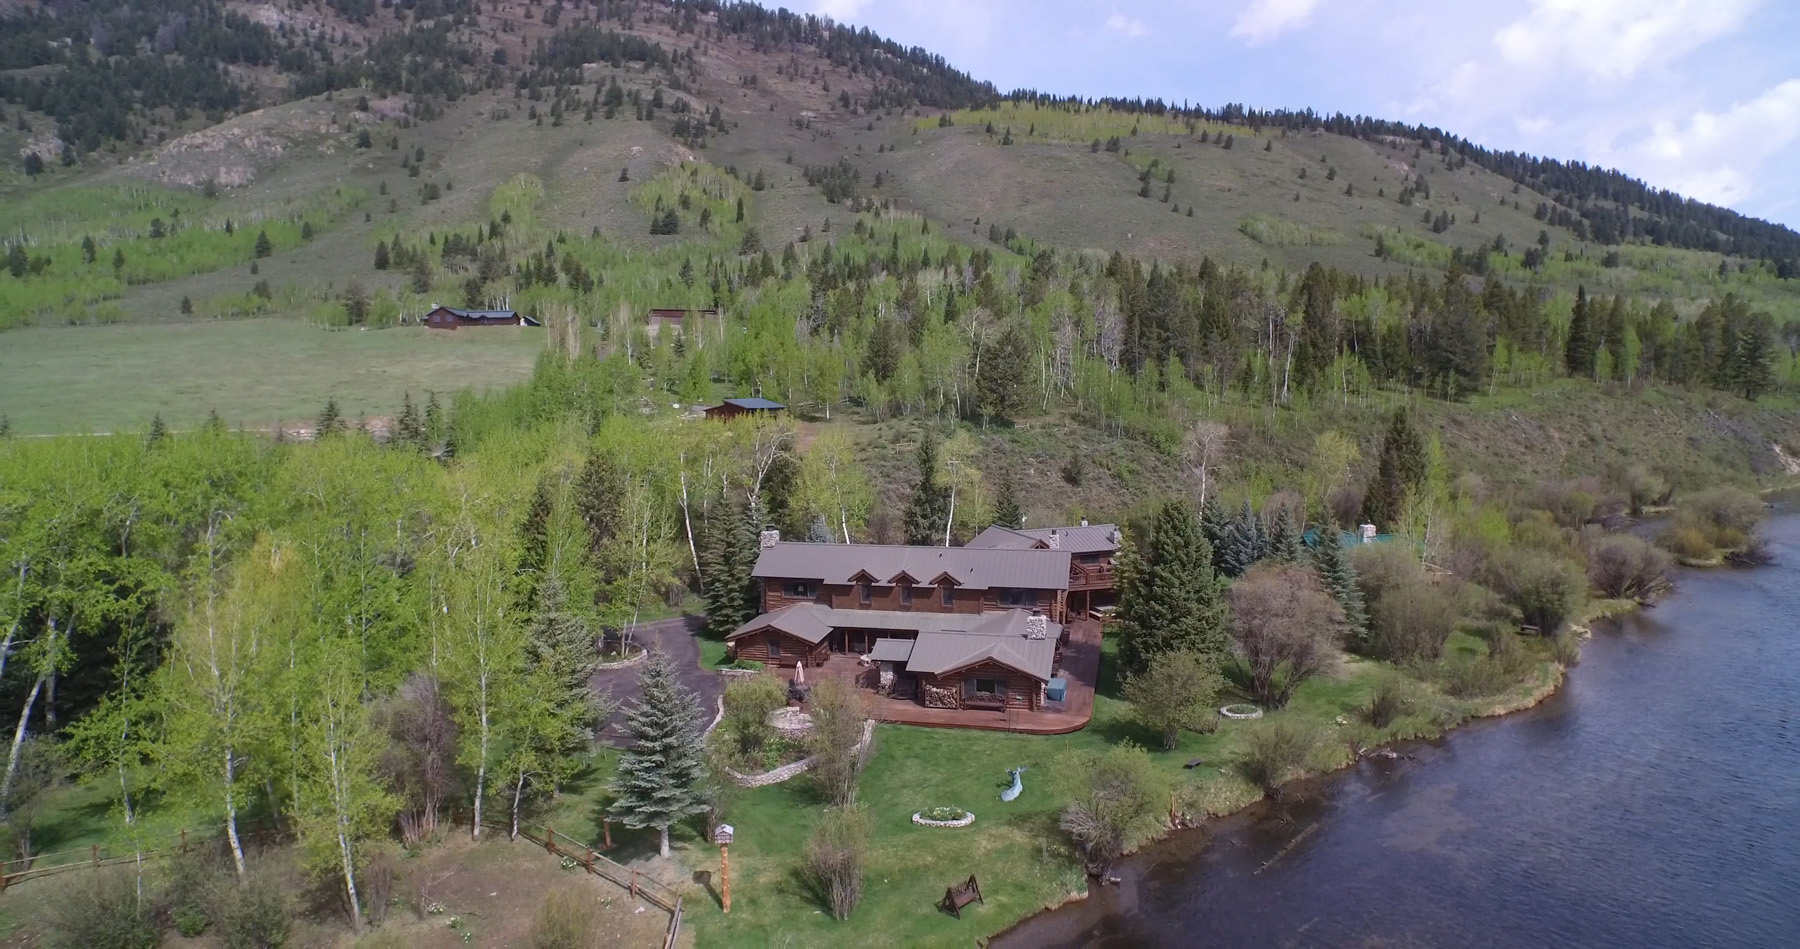 Casa Unifamiliar por un Venta en The Historic Lazy Moose Ranch 2455 N Fish Creek Road Wilson, Wyoming 83014 Estados Unidos